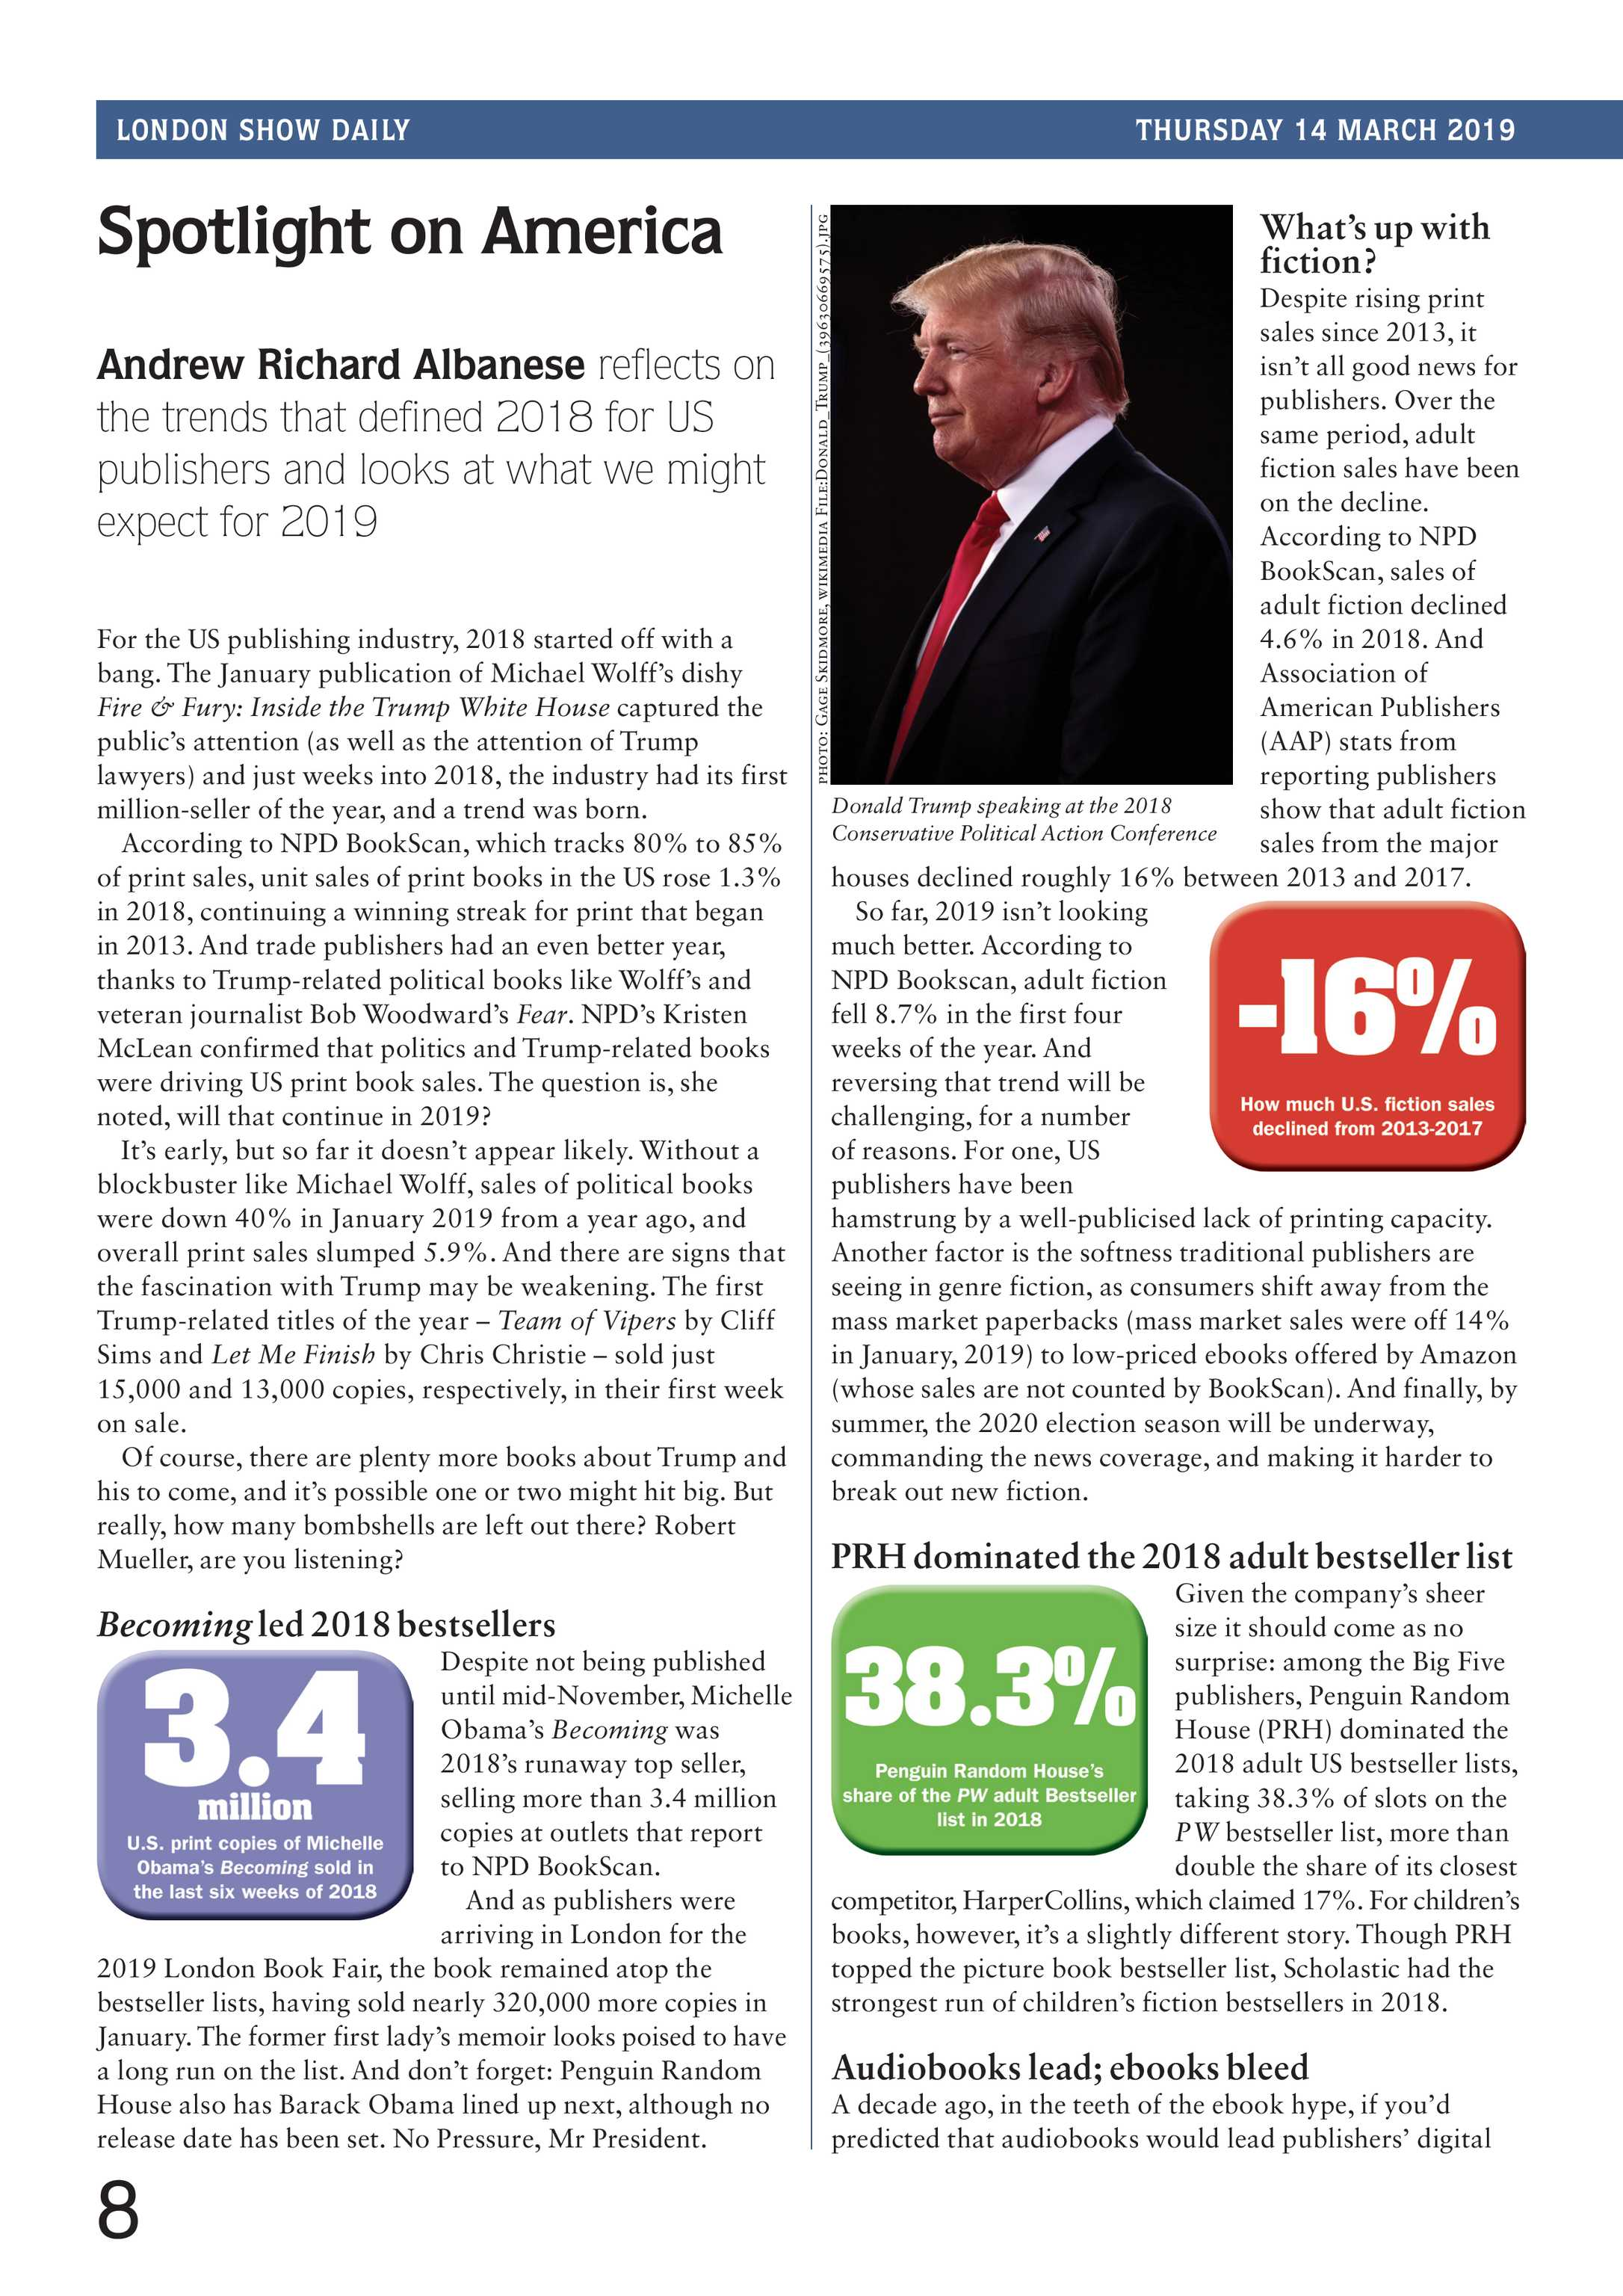 Publishers Weekly - London Show Daily March 14, 2019 - page 8